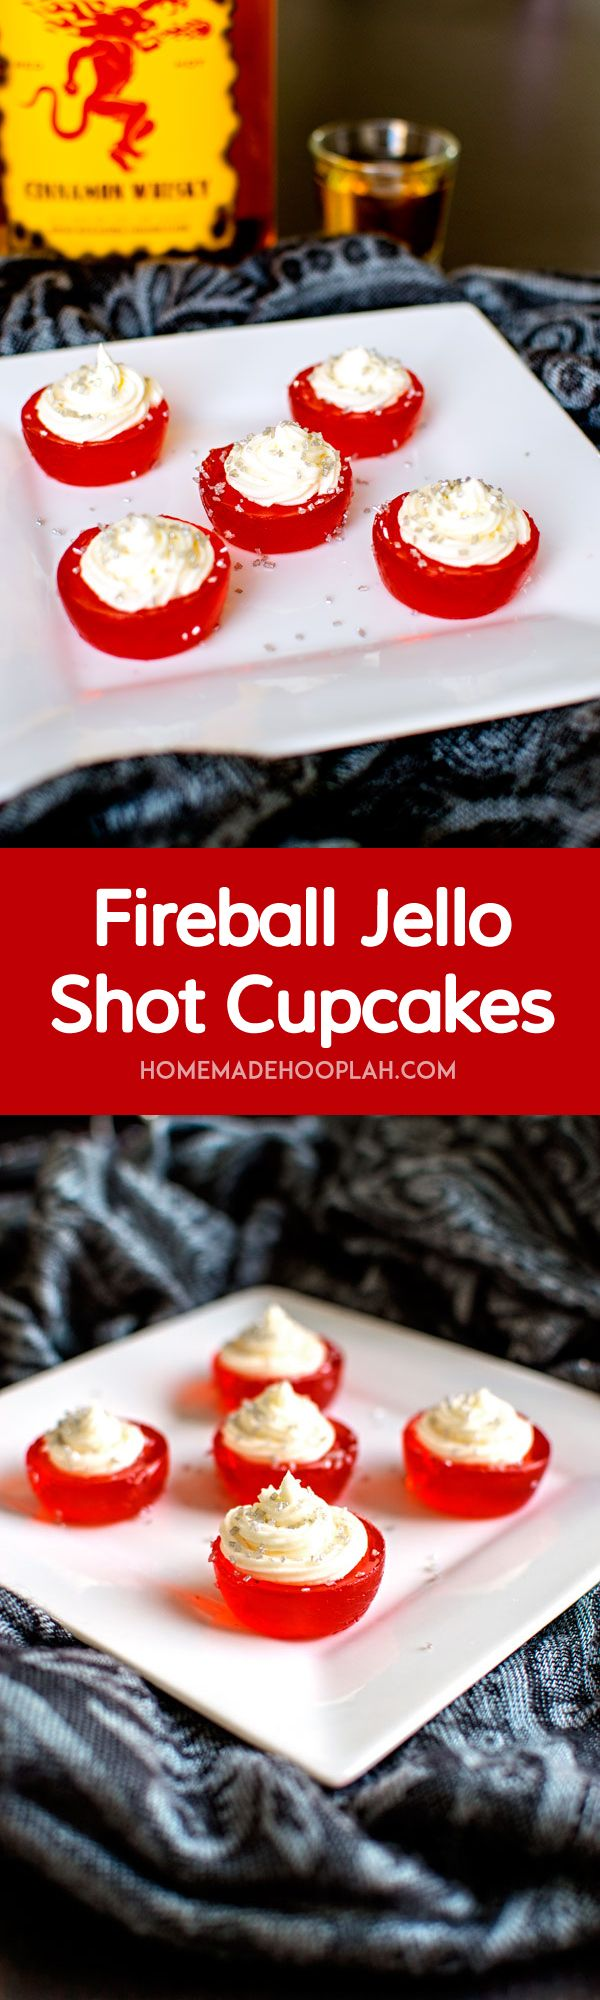 Fireball Jello Shot Cupcakes! These Fireball Jello Shot Cupcakes are infused with Fireball whisky and topped with Fireball butter cream frosting. Another way to warm up your holiday! | HomemadeHooplah.com